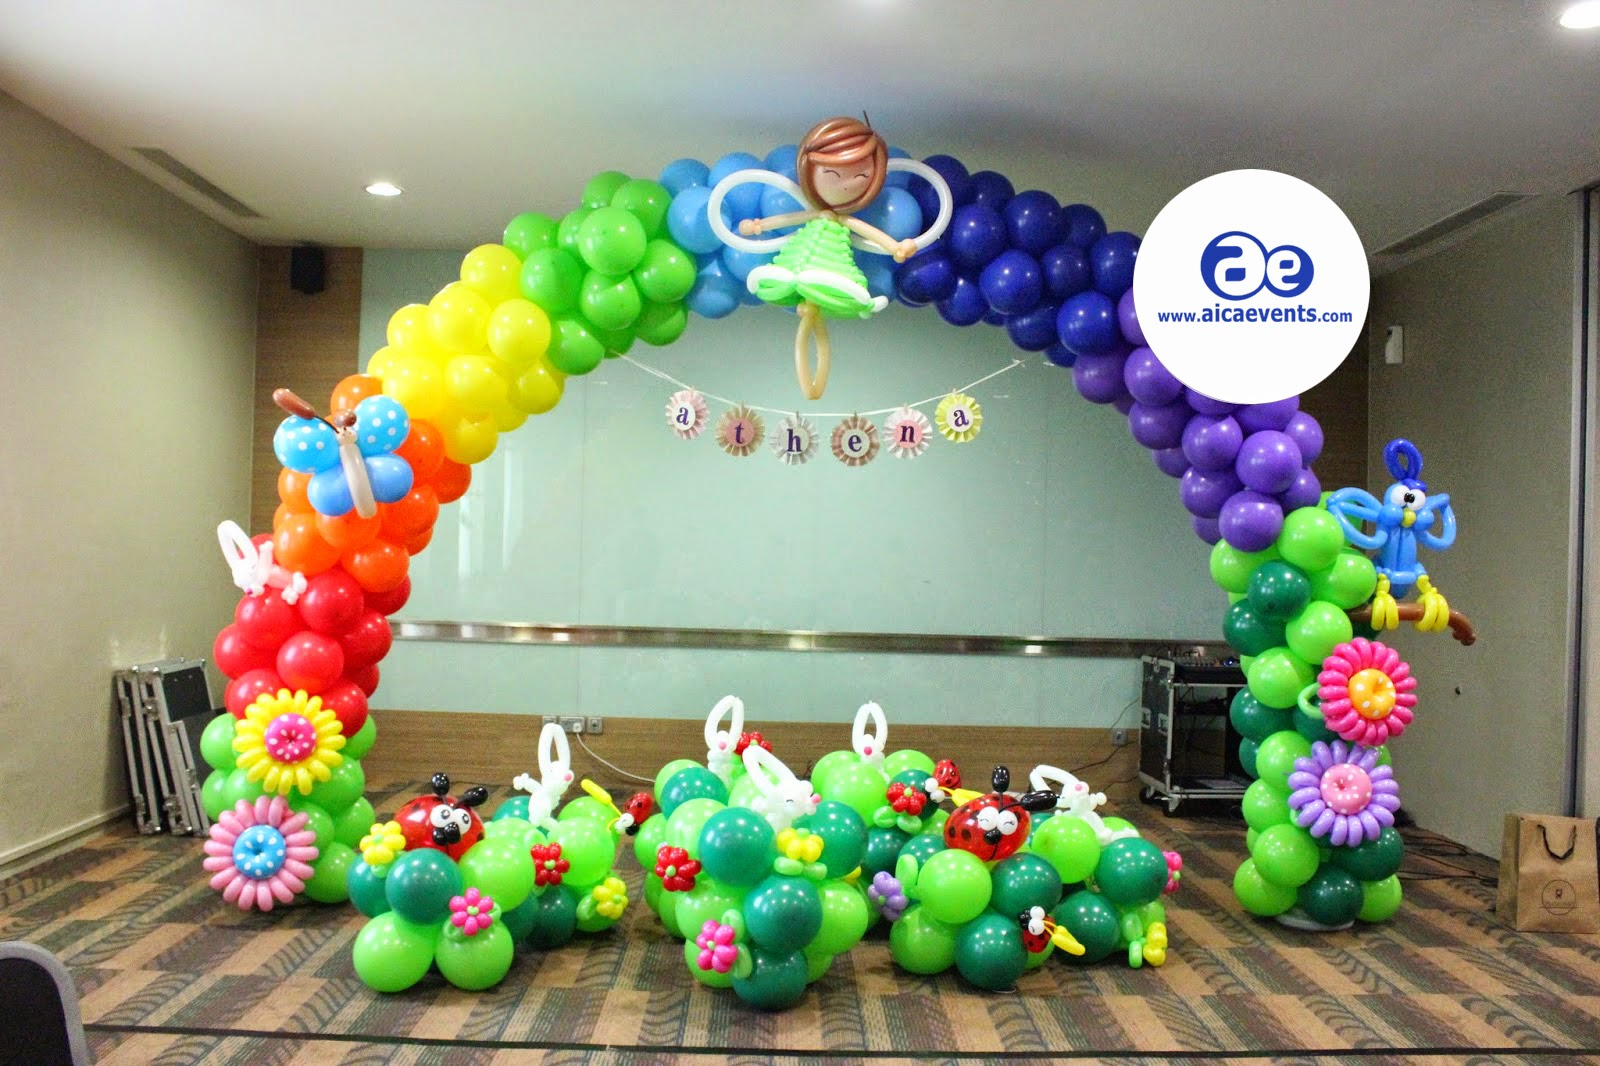 Aicaevents India Twisted Balloon Decorations Jungle Theme Balloon